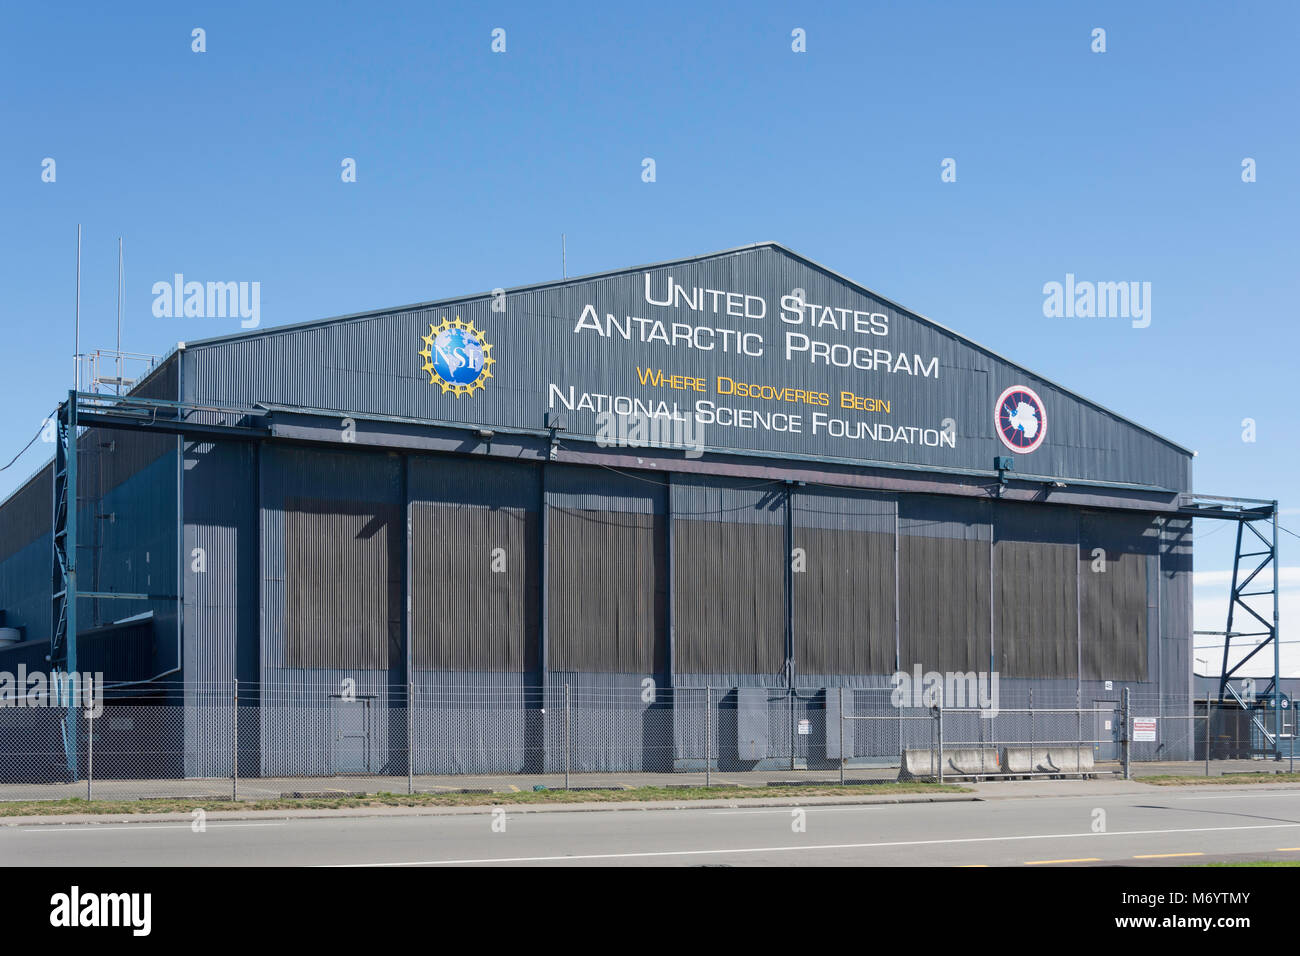 United States Antartica Programe hangar, Orchard Road, Harewood, Christchurch, Canterbury, New Zealand - Stock Image